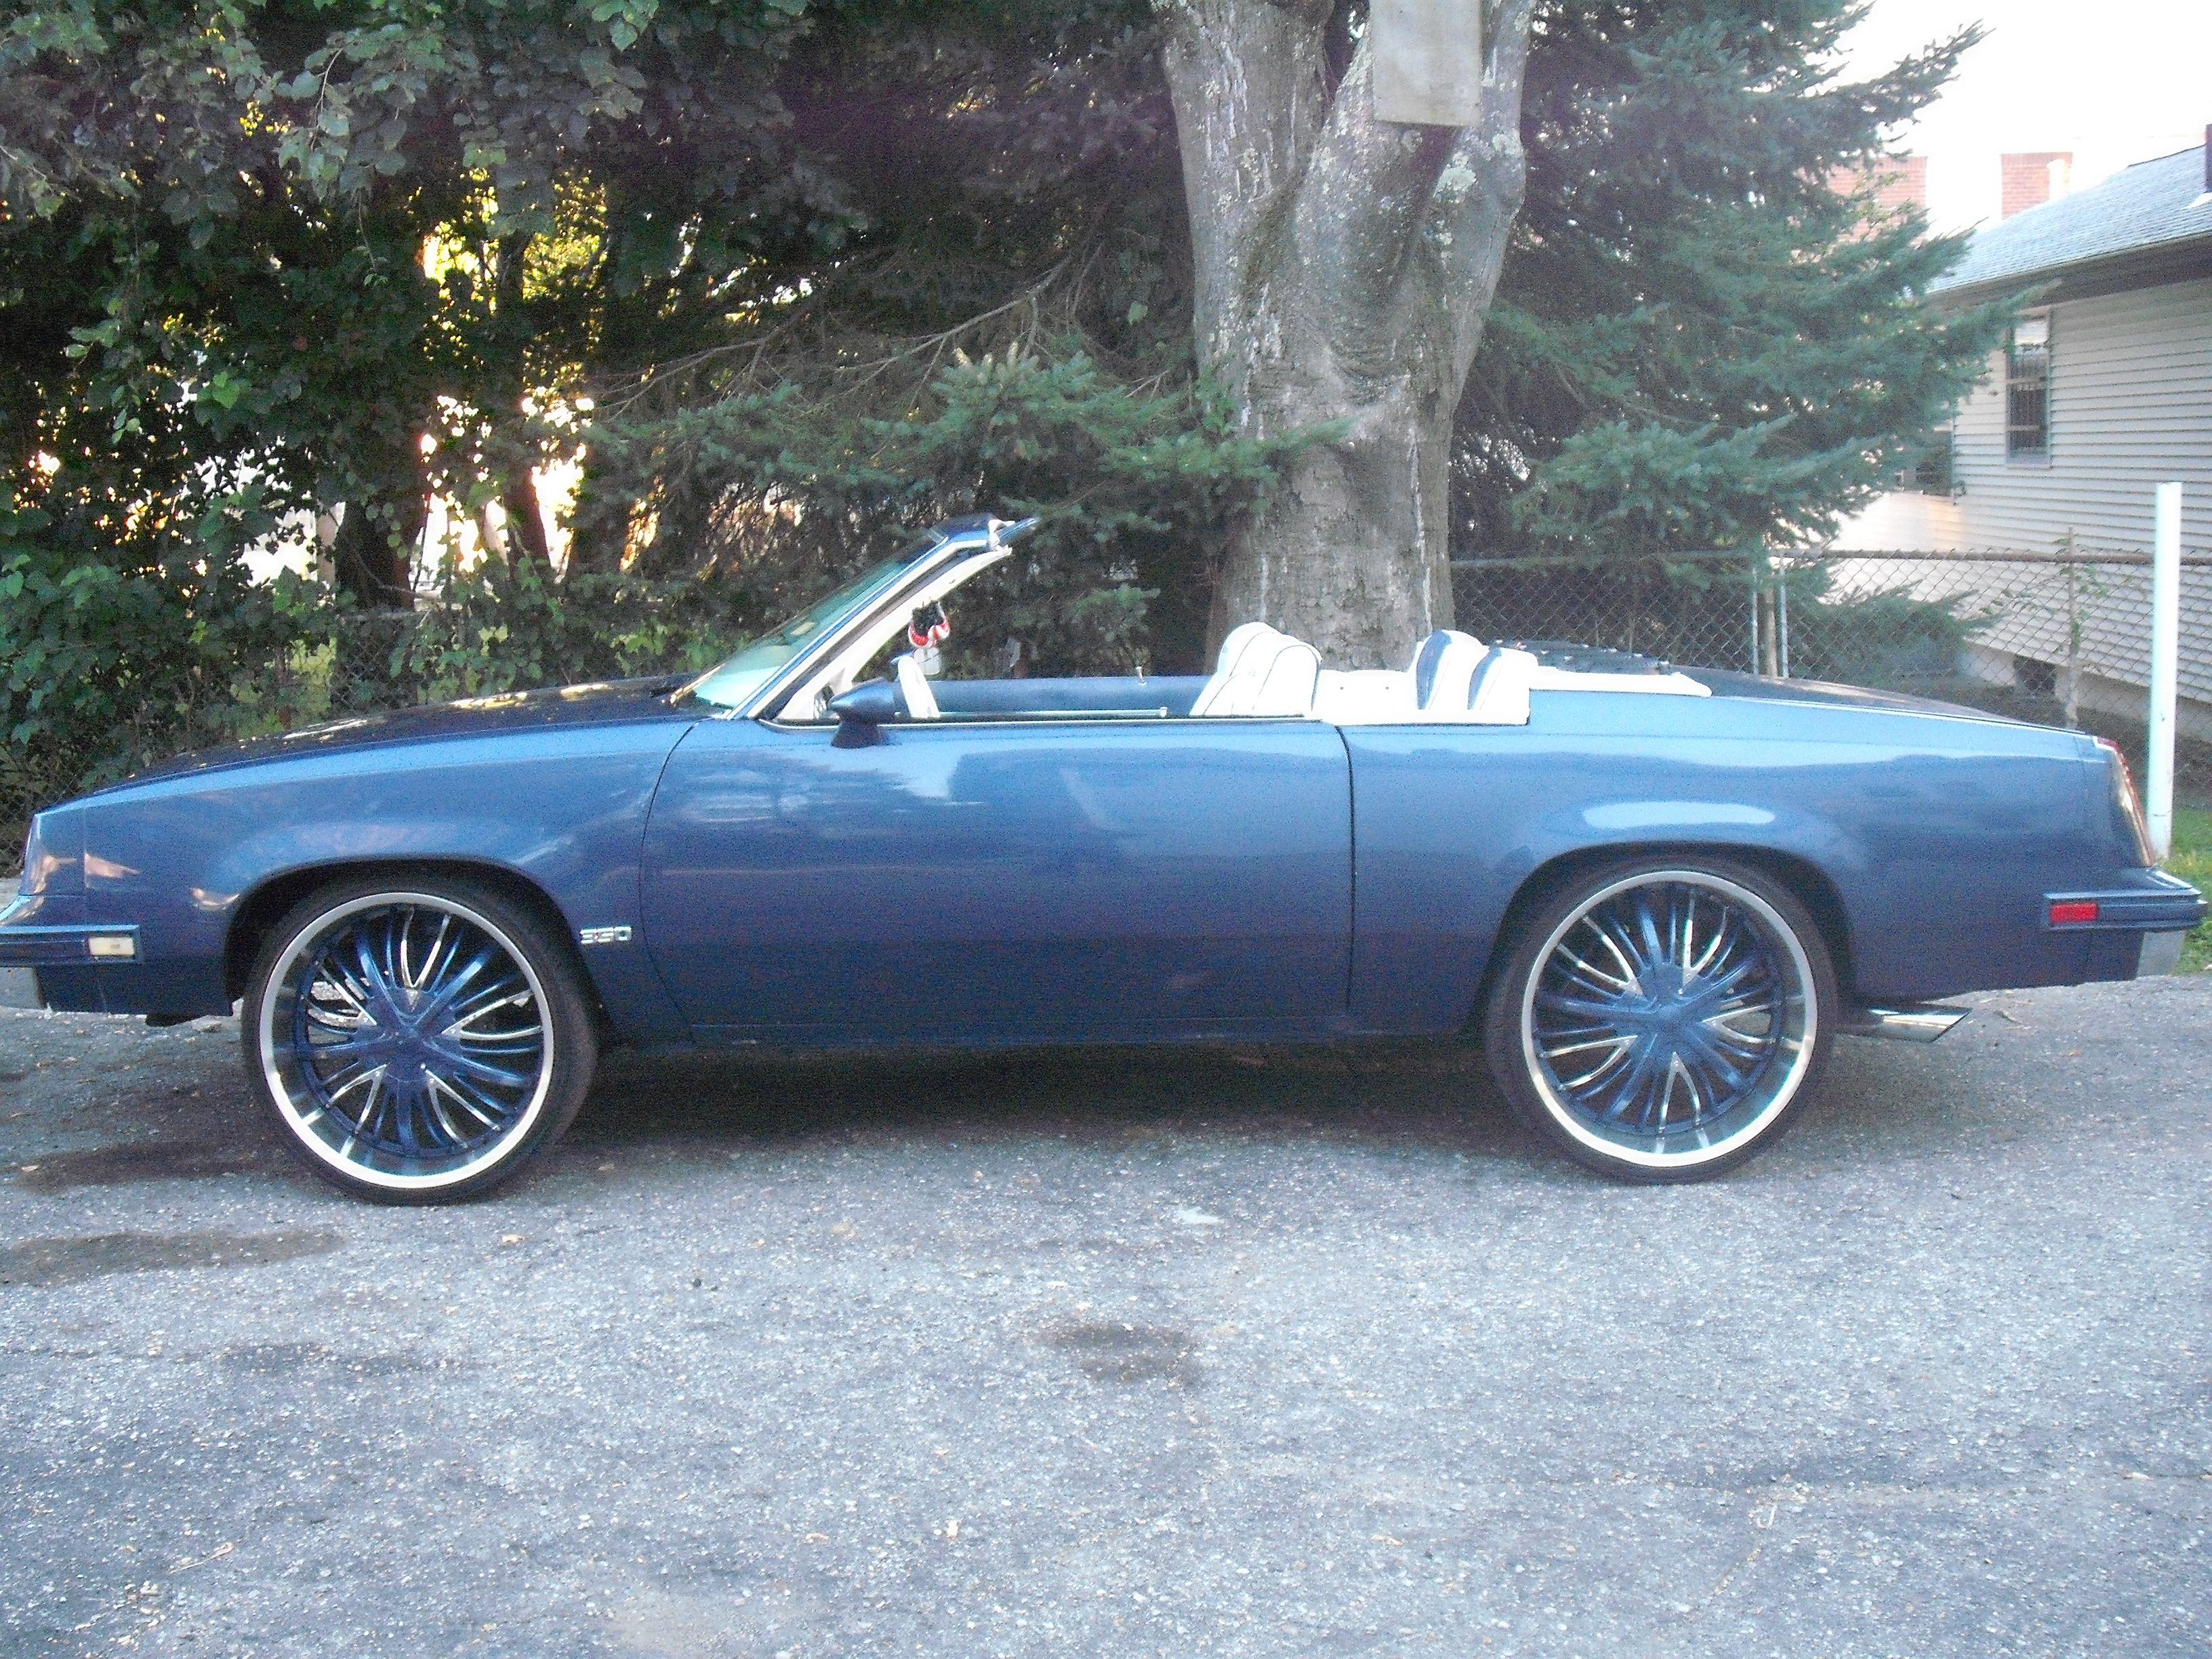 badasscutlass24's 1984 Oldsmobile Cutlass Supreme